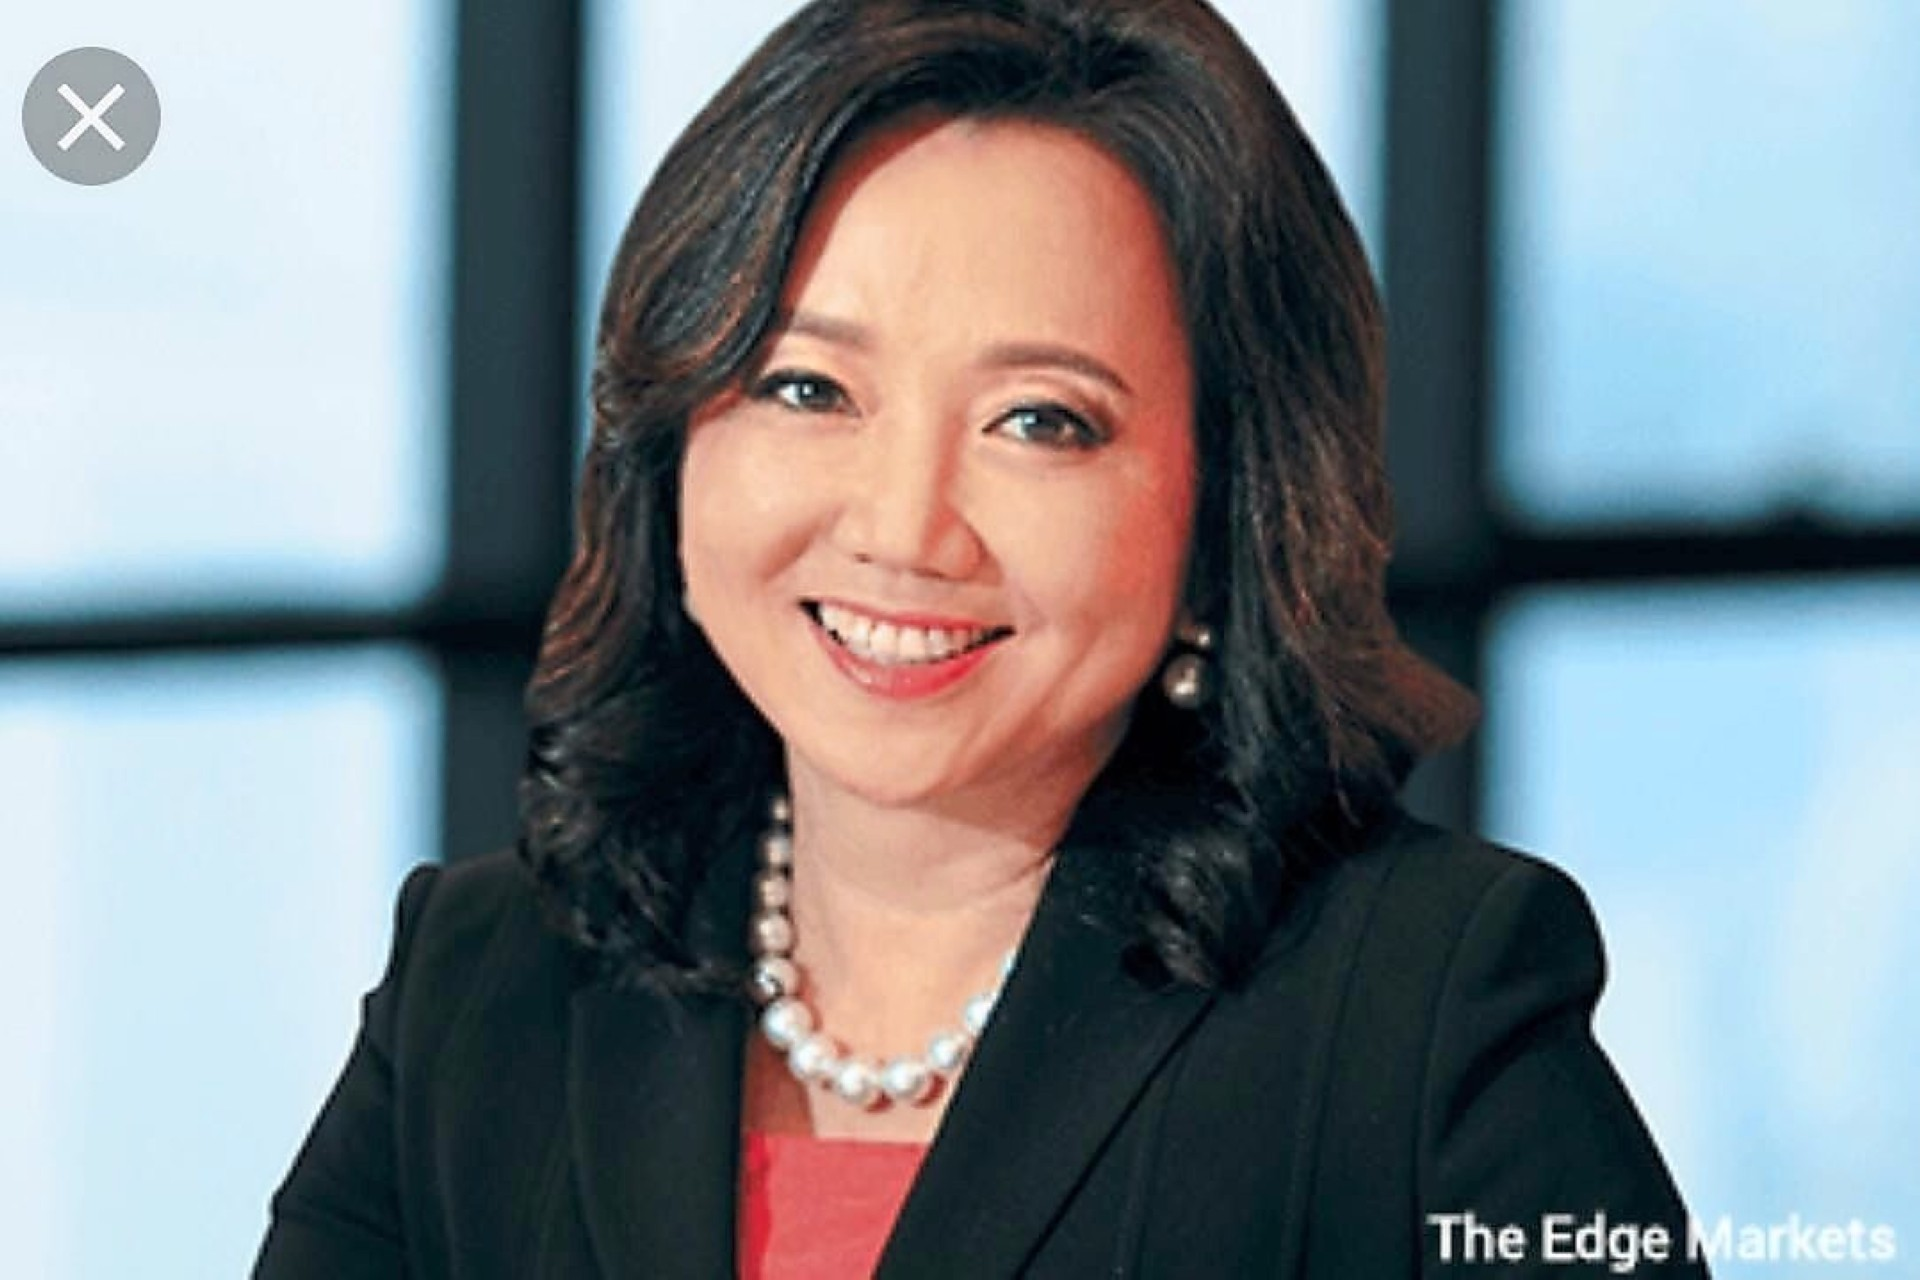 Datuk Kong Sui Lin, independent director of AMMB Holdings Bhd